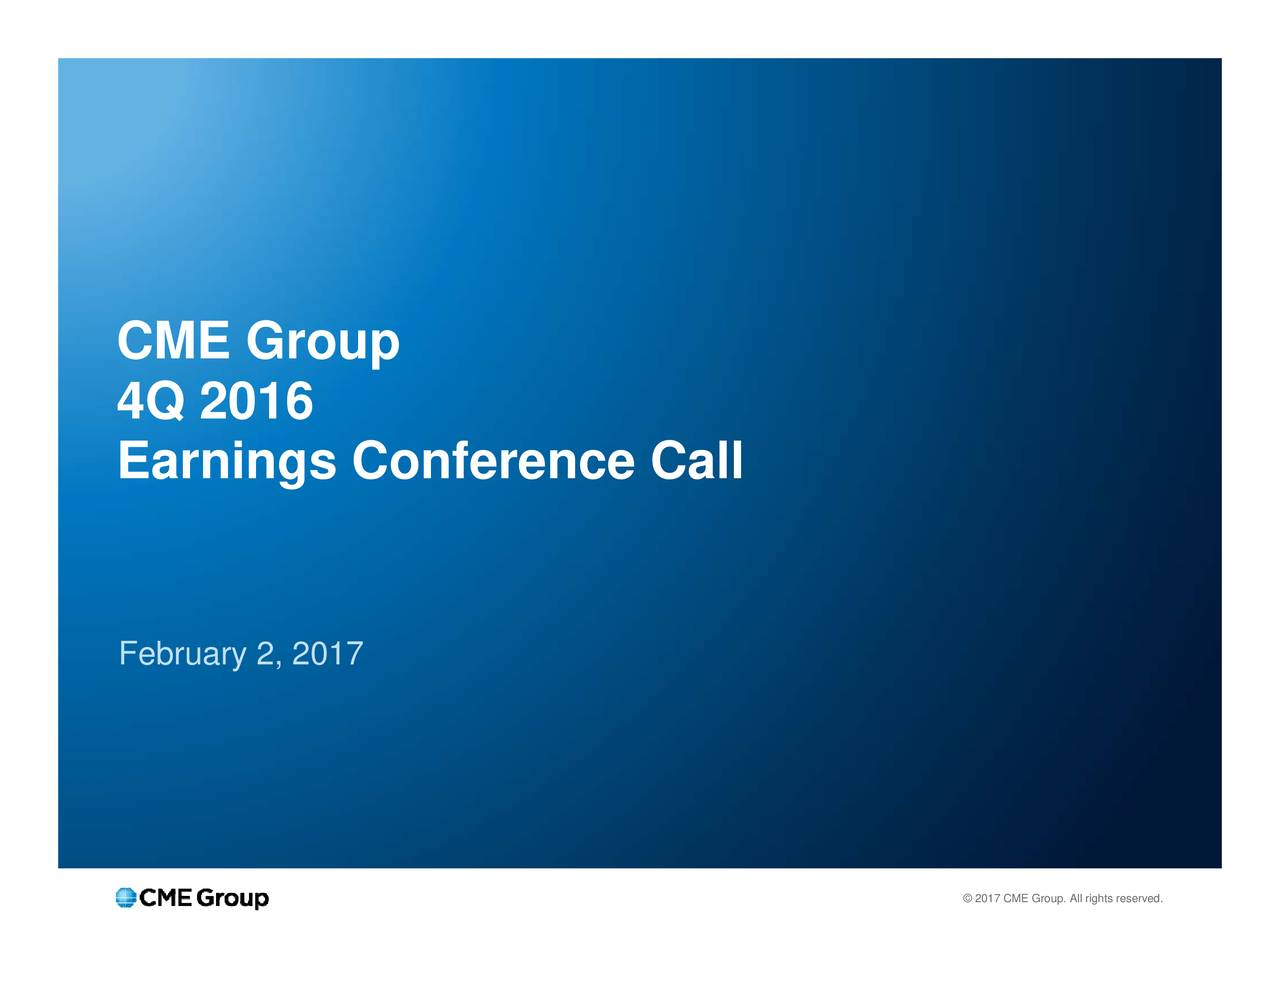 CM4QE20n6pgs Conference Call